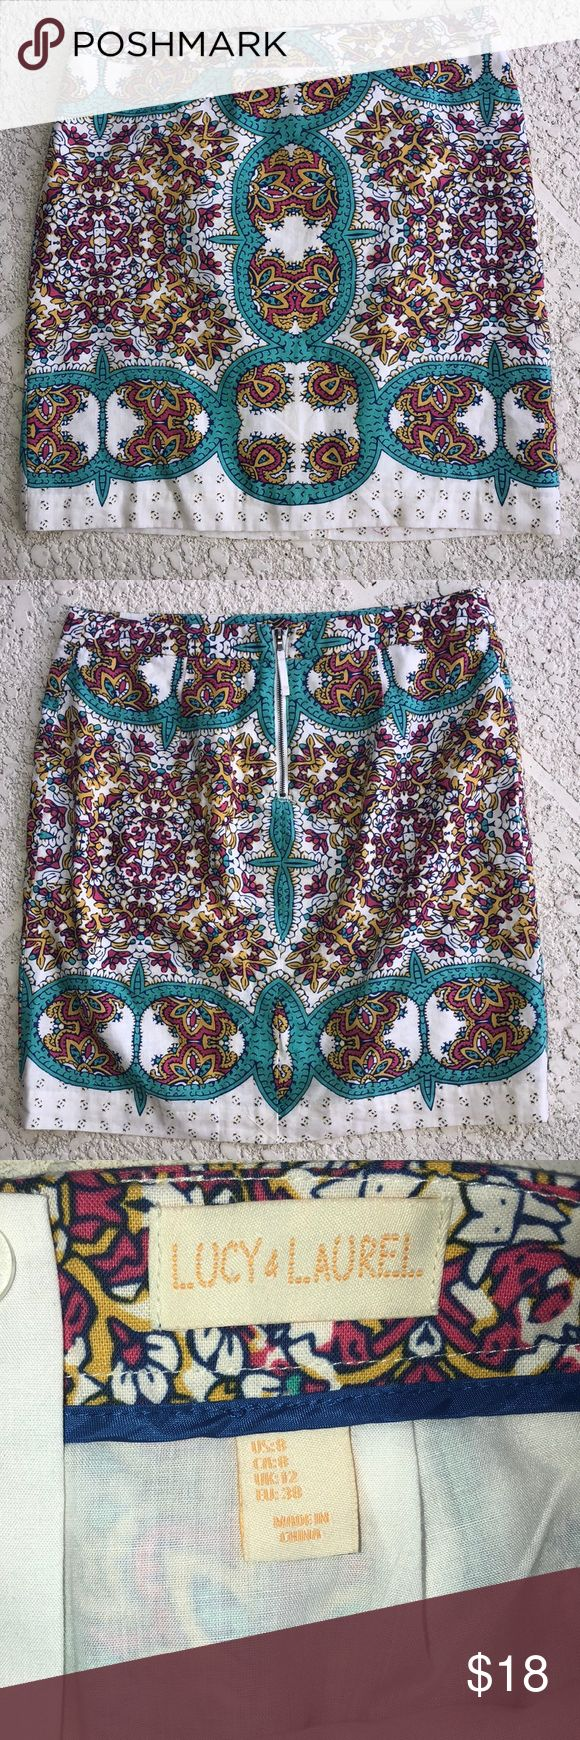 """🆕 Lucy & Laurel floral print skirt EUC Anthro Beautiful lined skirt  White background with graphic floral print on turquoise, yellow, navy and magenta. Linen and cotton skirt, lining polyester and cotton. Approximately 19"""" long Waist is approximately 16"""" across. Anthropologie Skirts"""